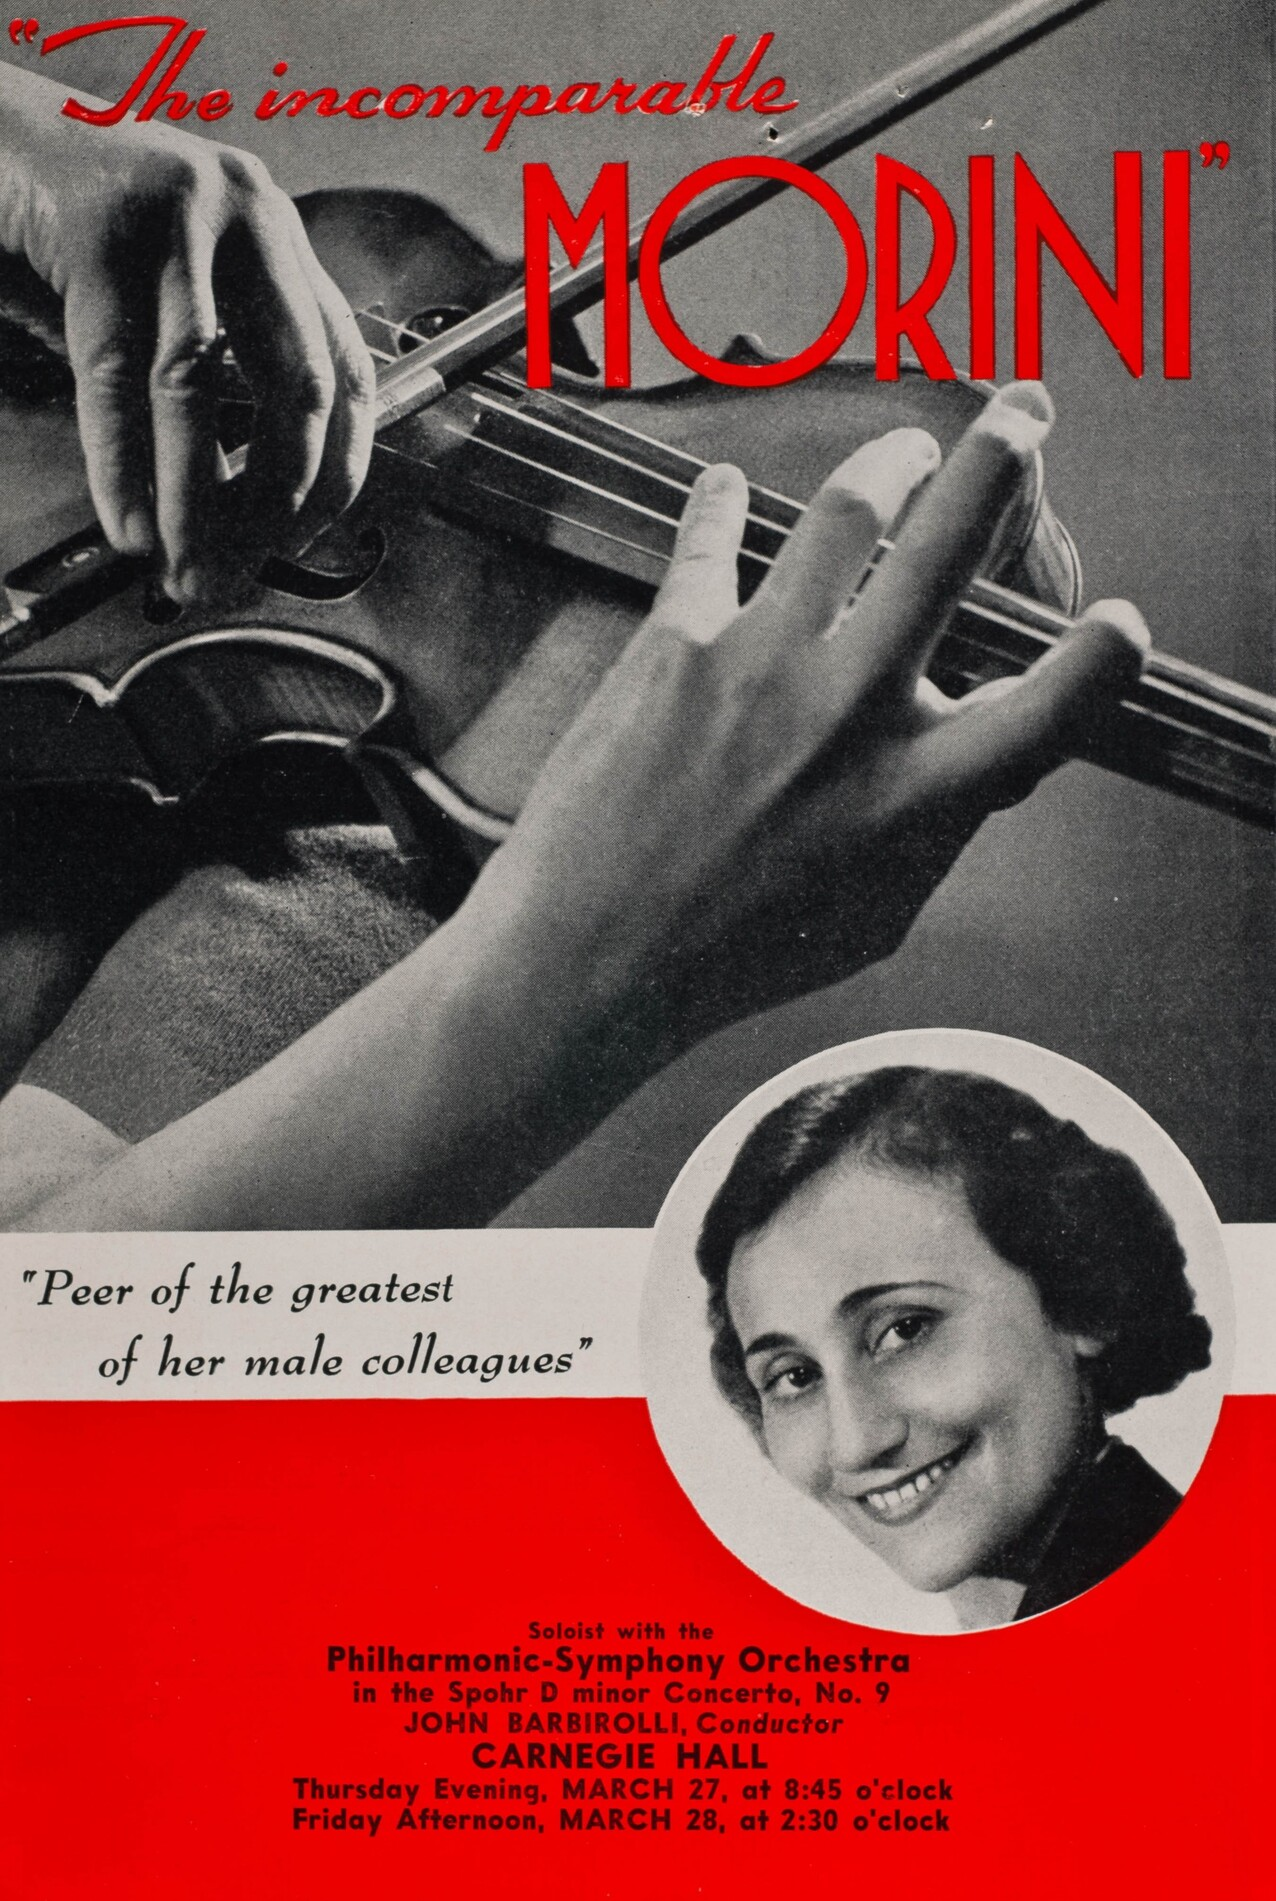 Advertisement for Erica Morini's March 1941 performances with the New York Philharmonic.